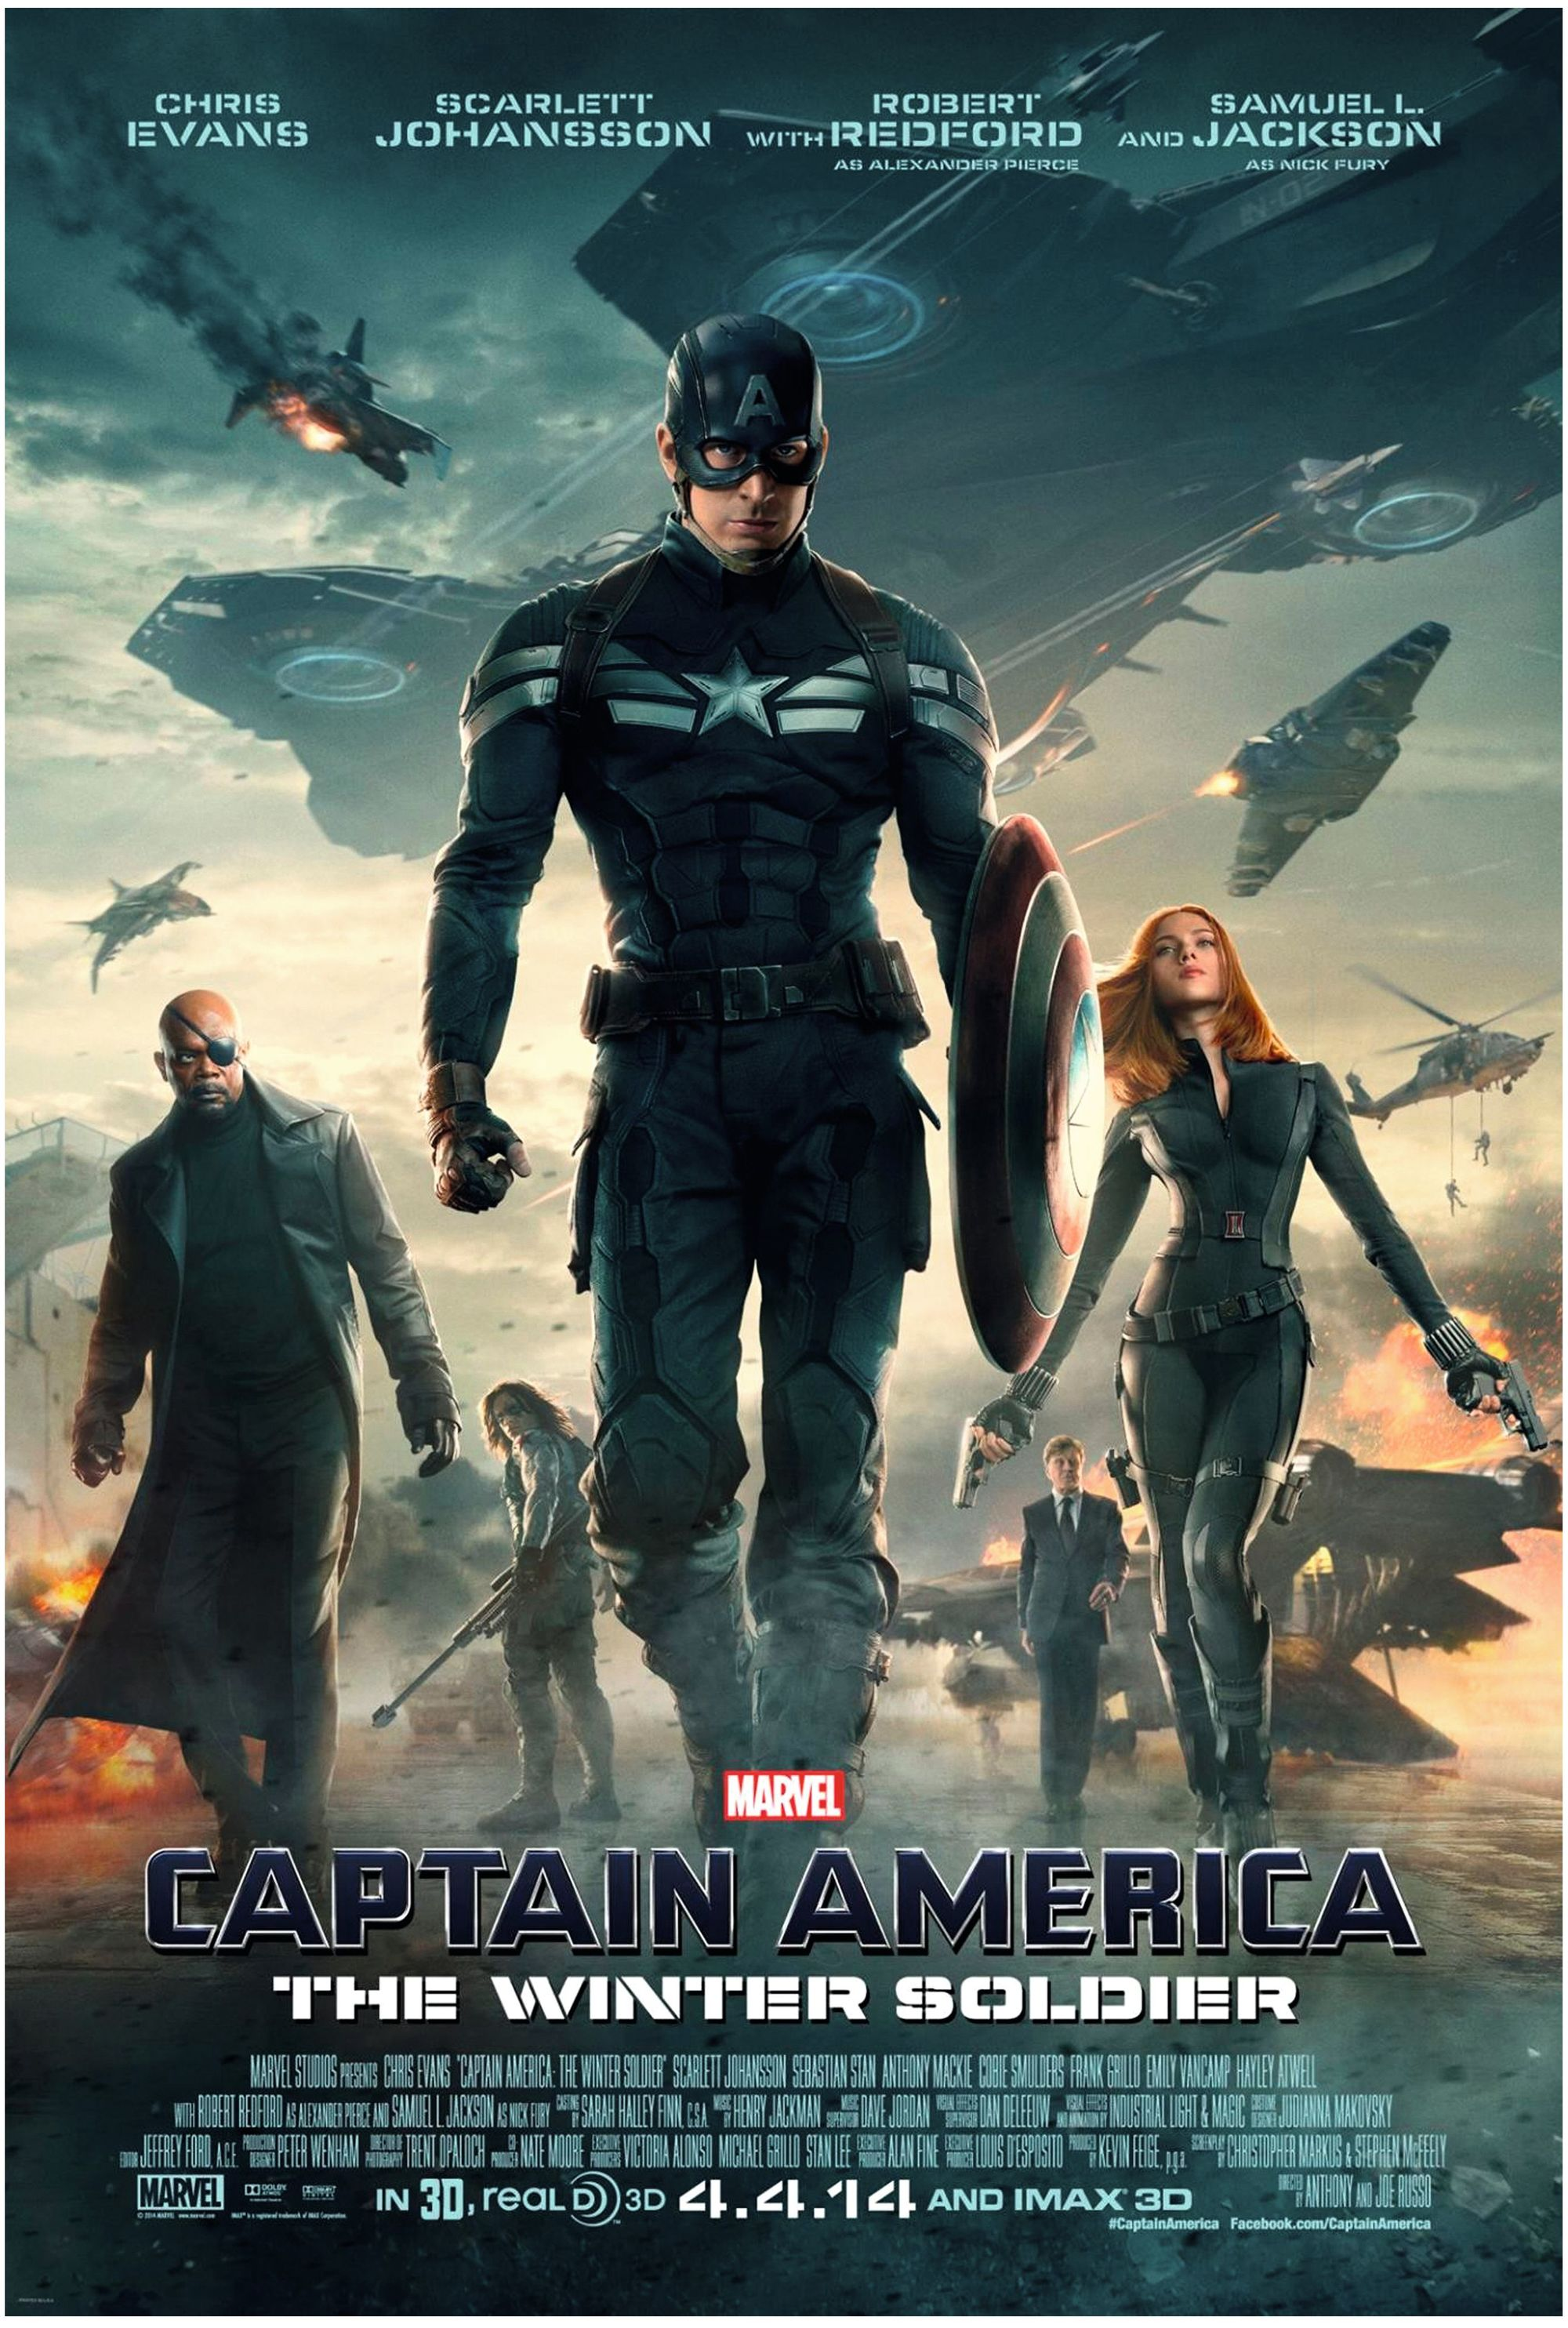 Captain America, The Winter Soldier, by Anthony and Joe Russo, 2014